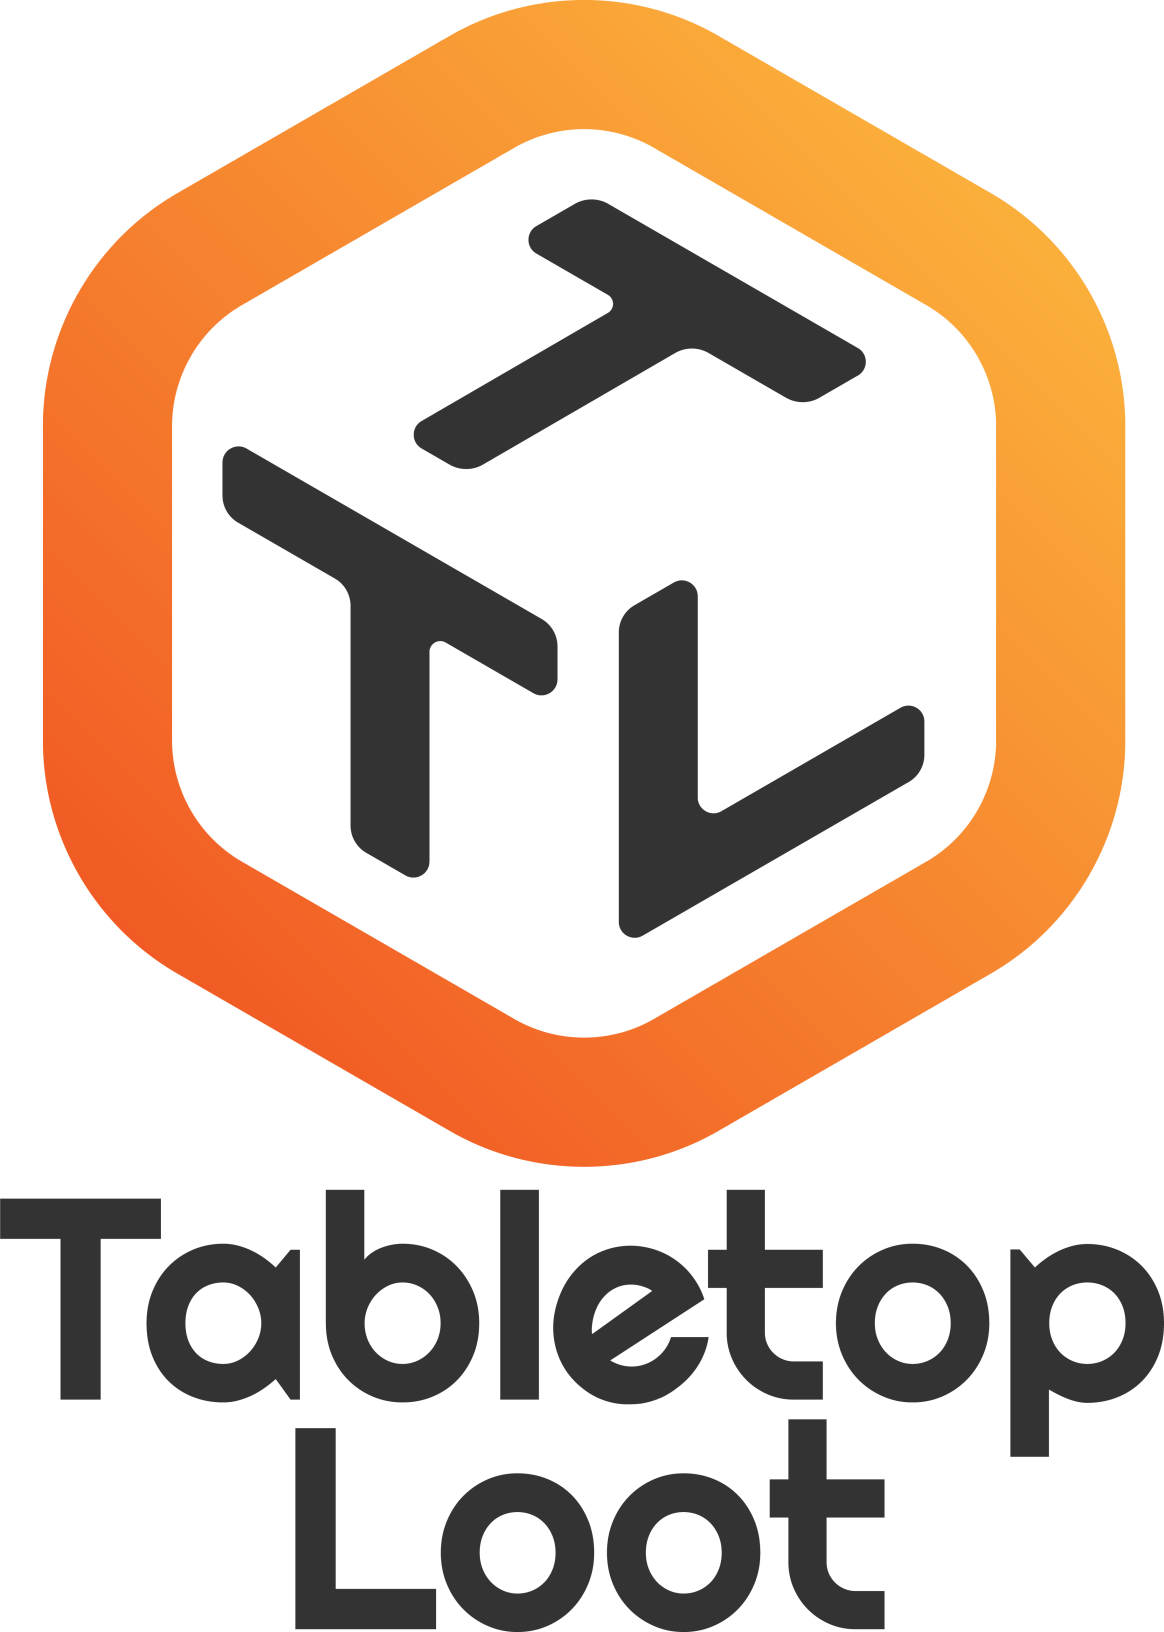 Tabletop Loot Logo Large@8x